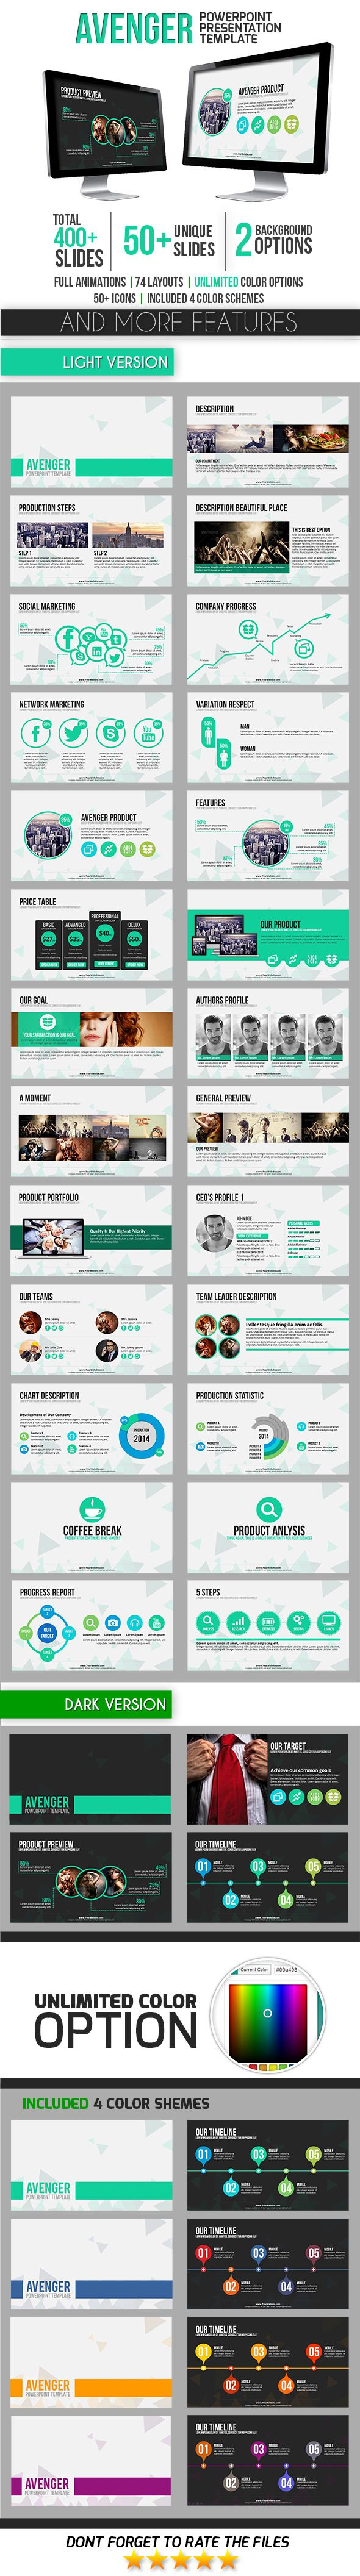 Avenger powerpoint template template font logo and fonts avenger powerpoint template toneelgroepblik Image collections